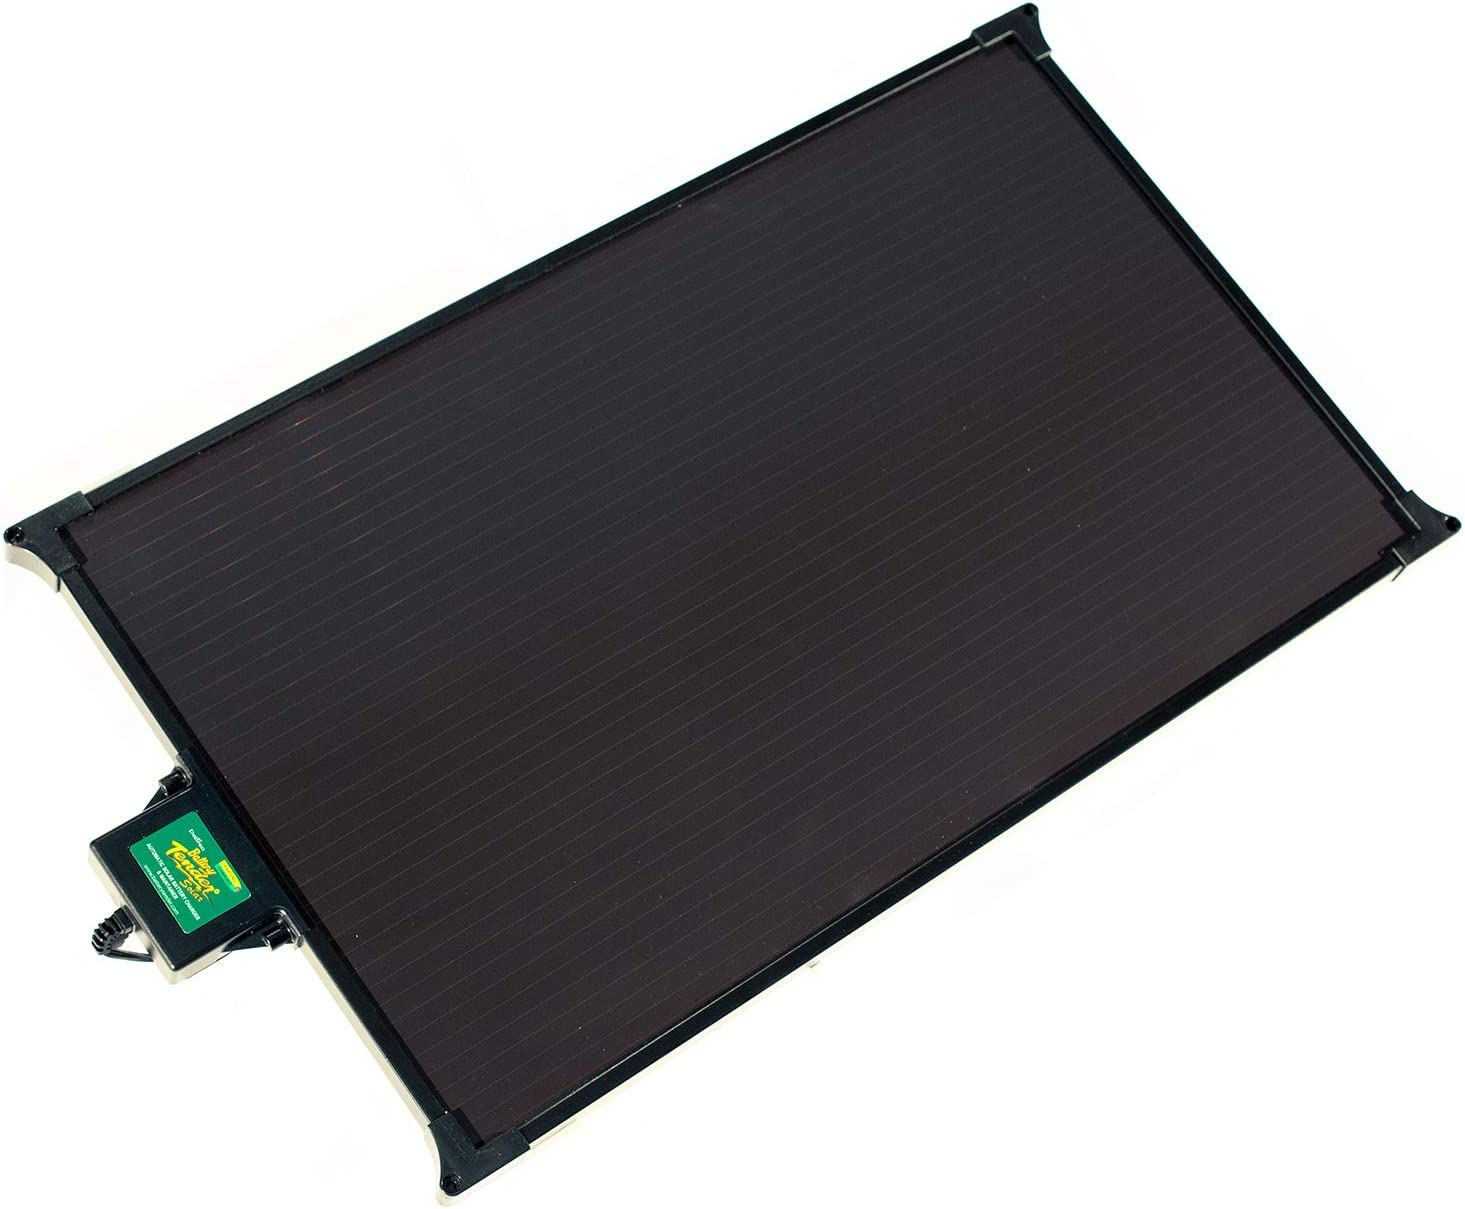 Battery Tender, 540mA, 10W Solar Battery Charger 12 Volt